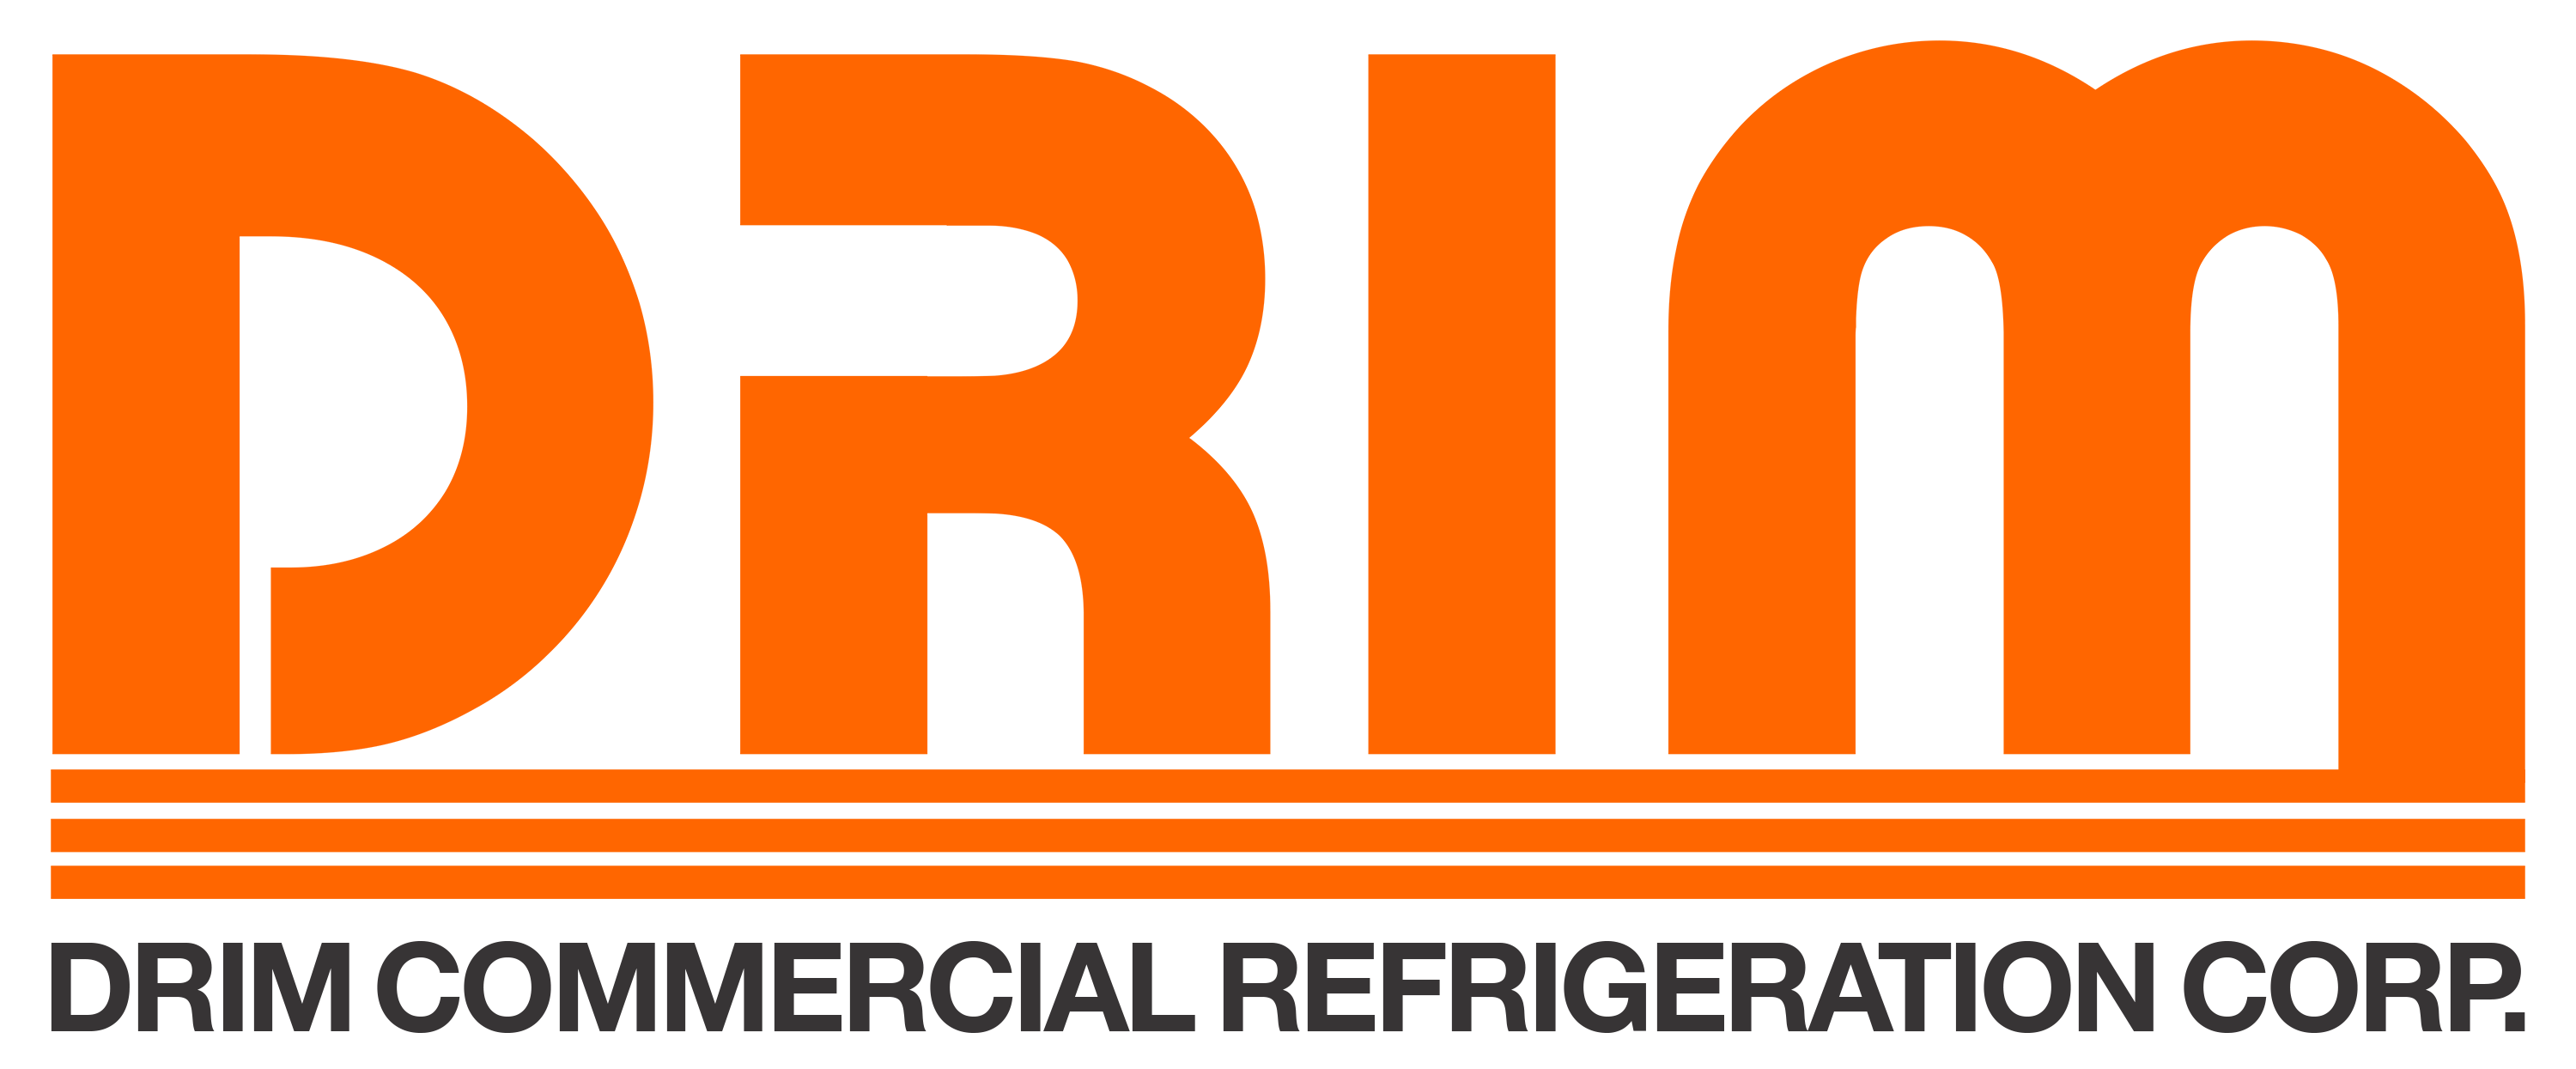 DRIM Commercial Refrigeration Corporation